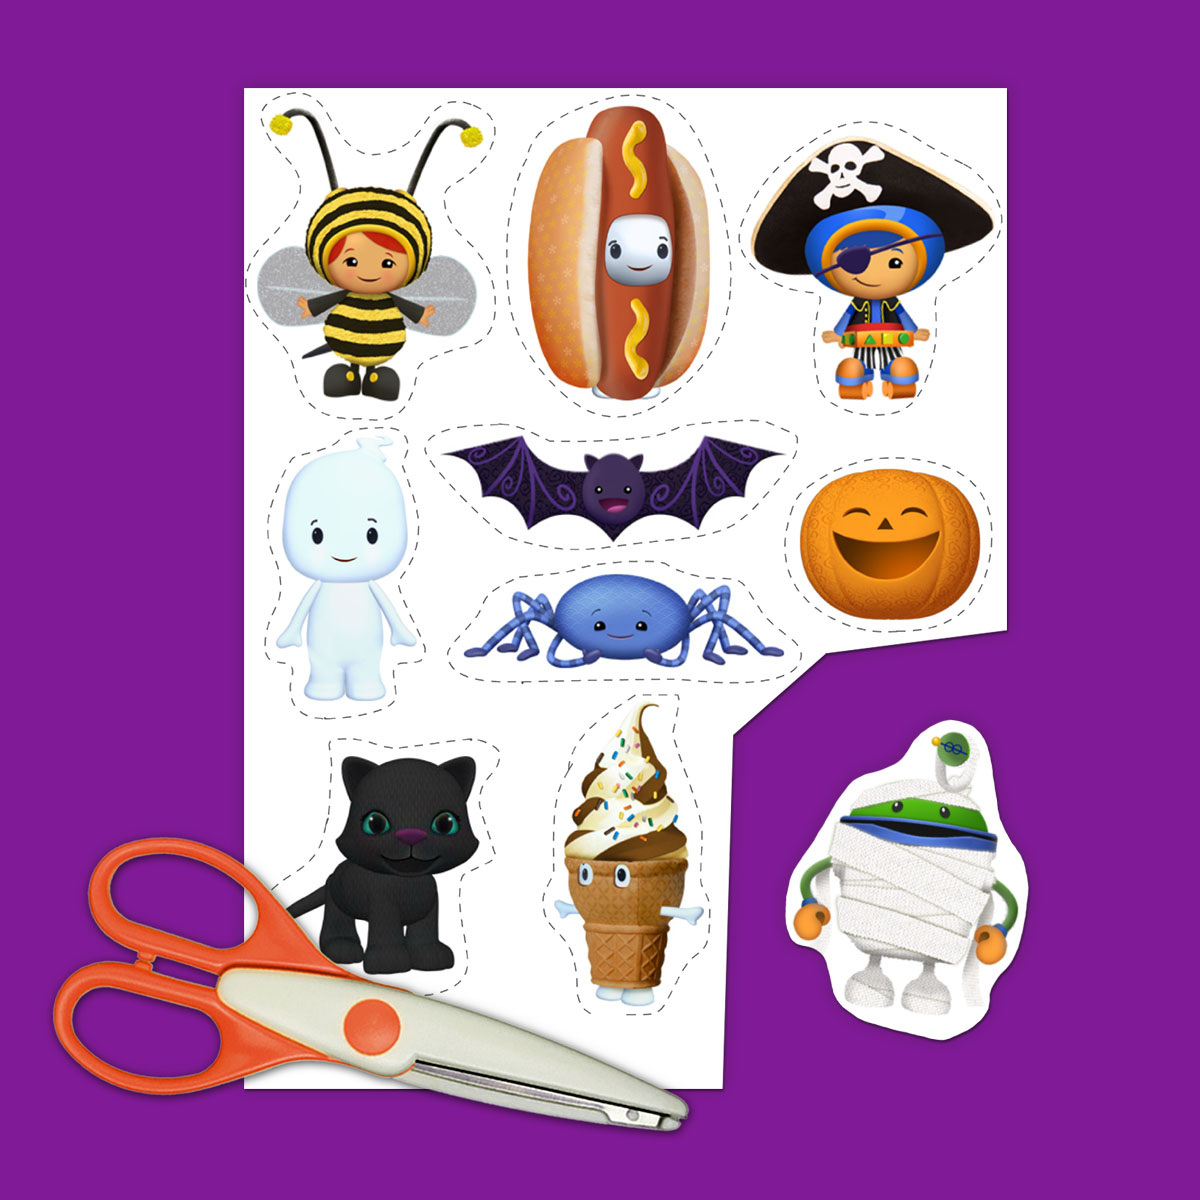 4 Team Umizoomi Halloween Printables